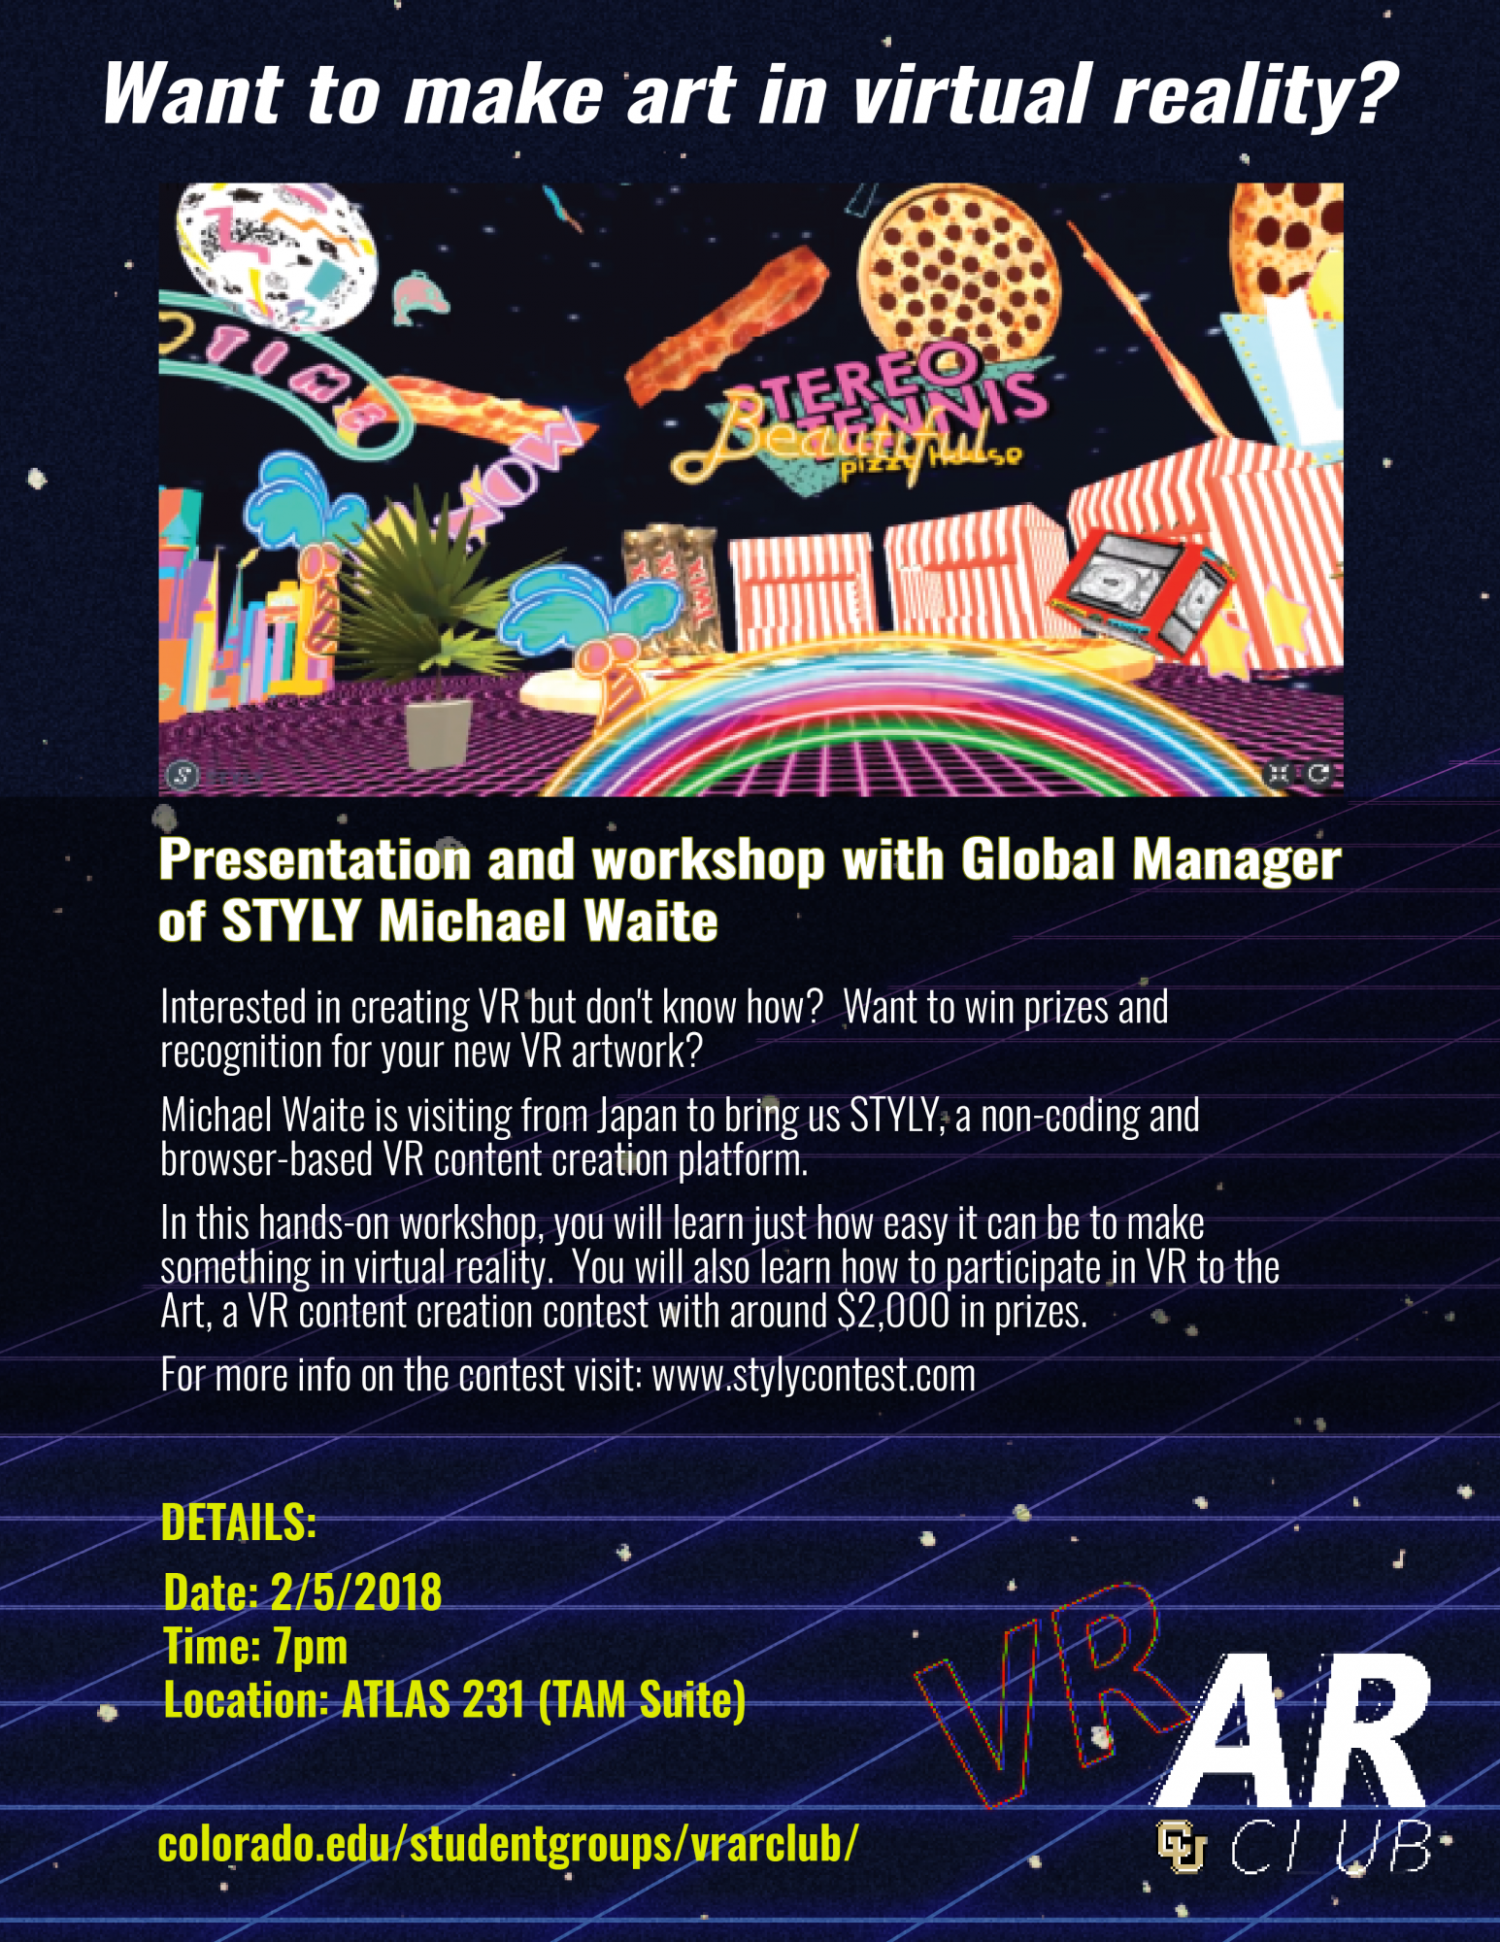 STYLY Workshop with Michael Waite